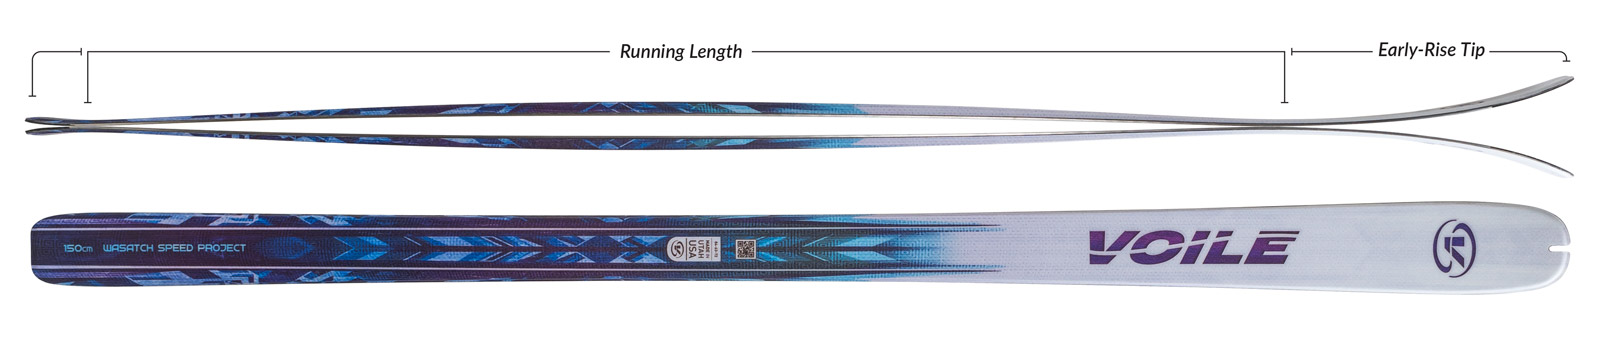 Voile Women's WSP Skis Camber Profile